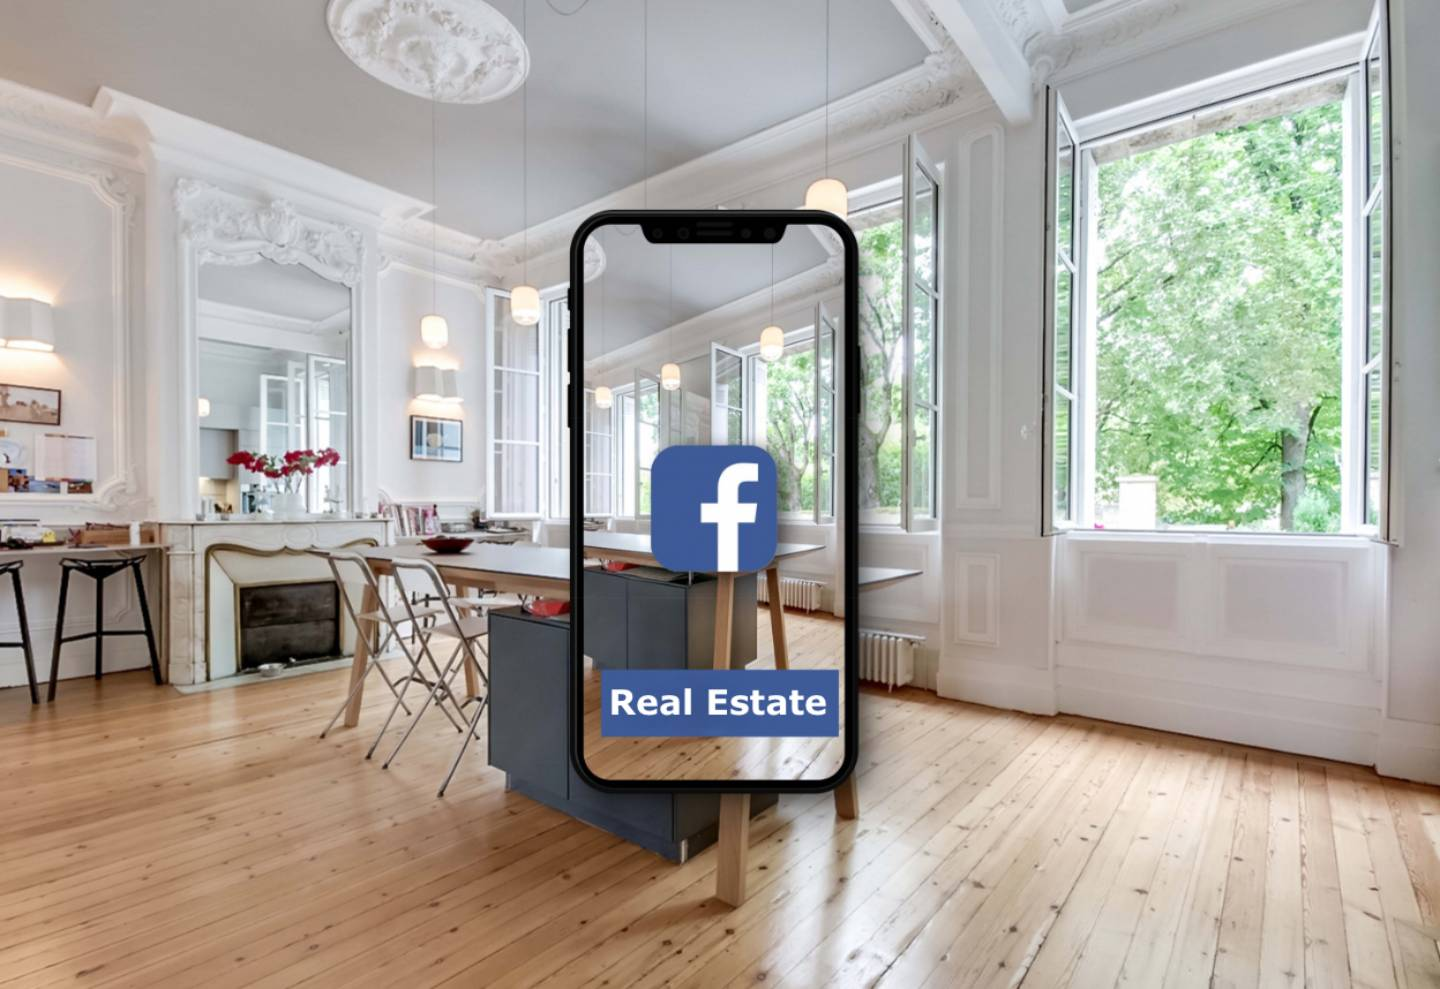 Apartment with Smartphone Facebook App